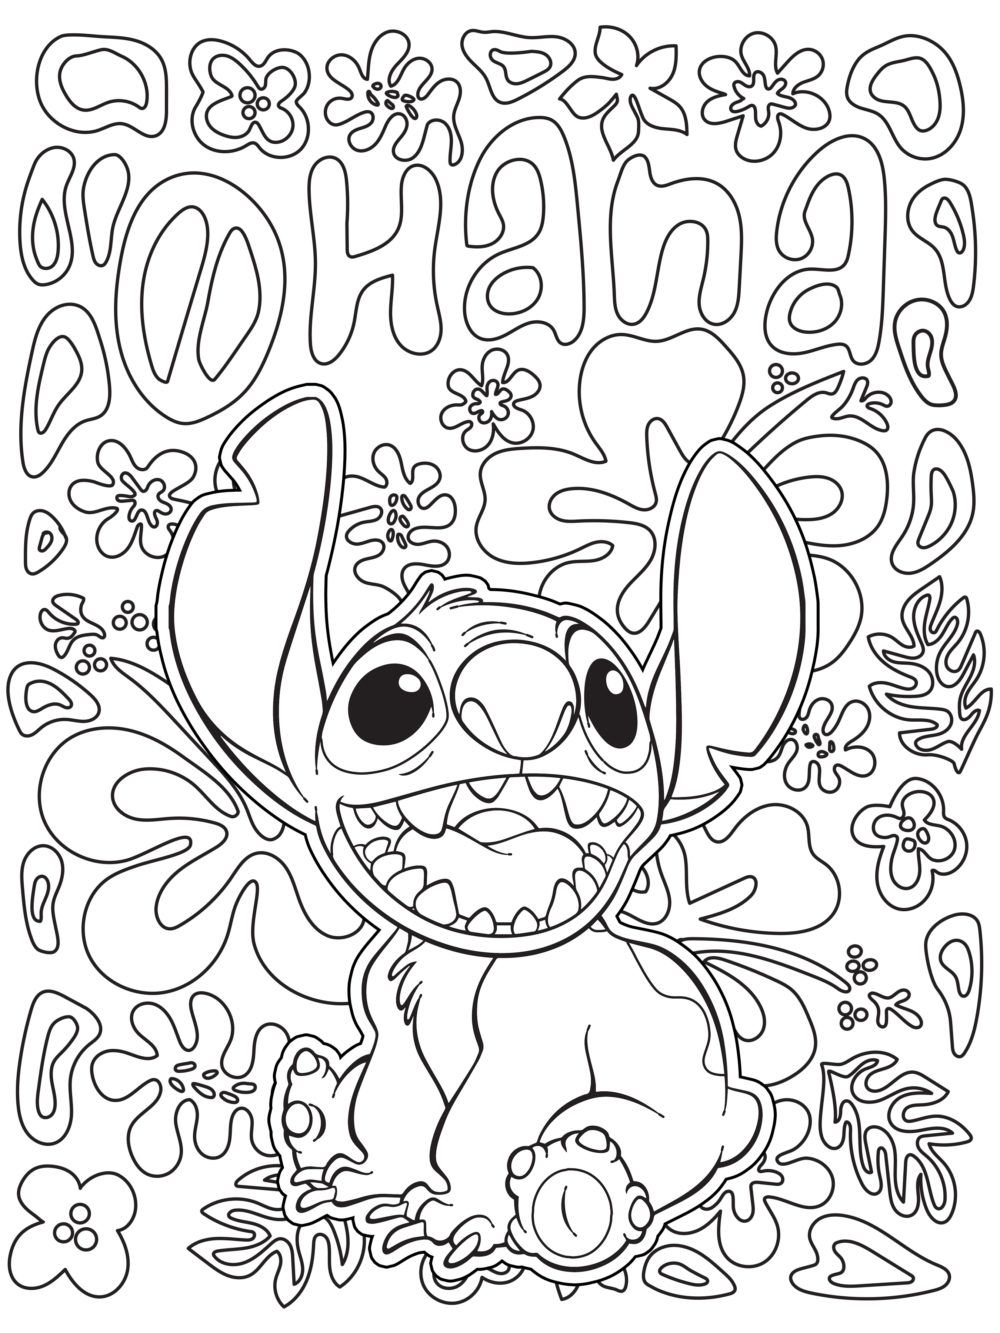 Hana for Sharpie Coloring Pages - Free Printable Coloring ...